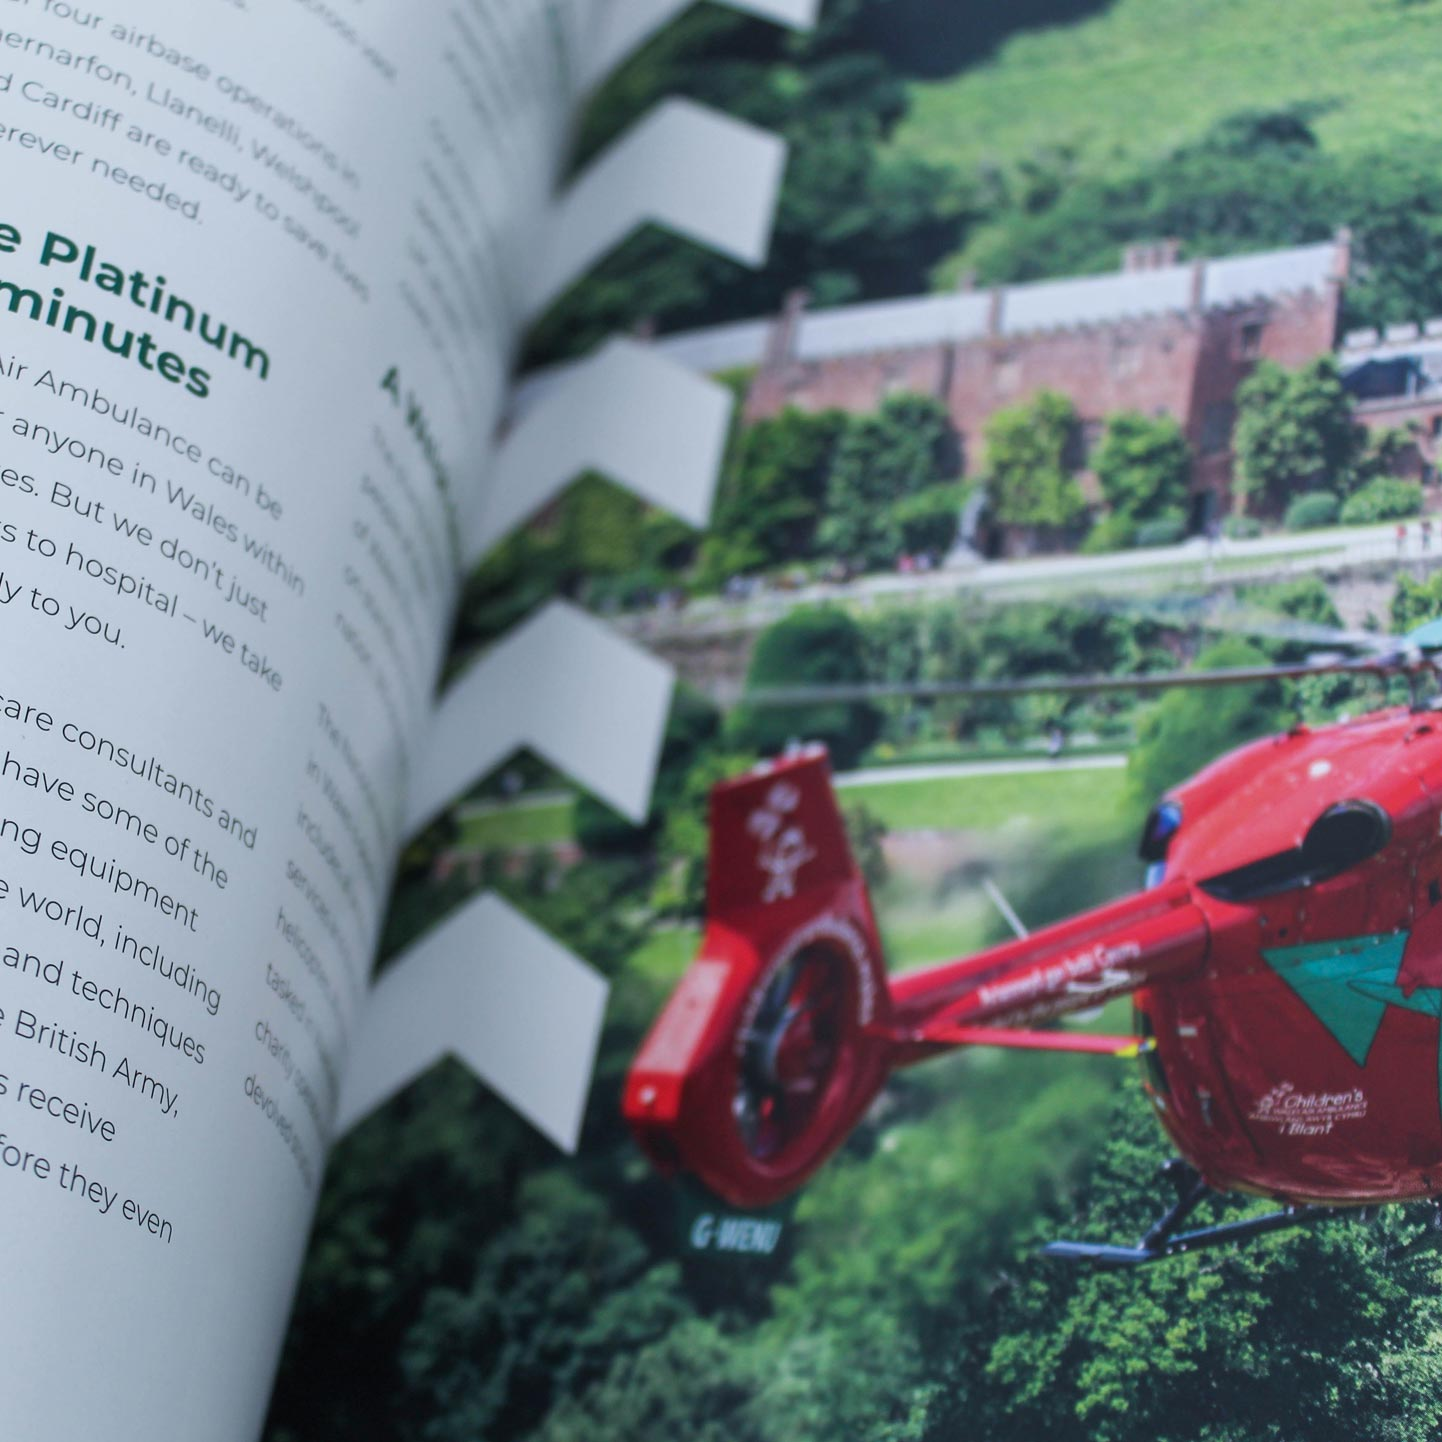 Air Ambulance Inside Pages detail